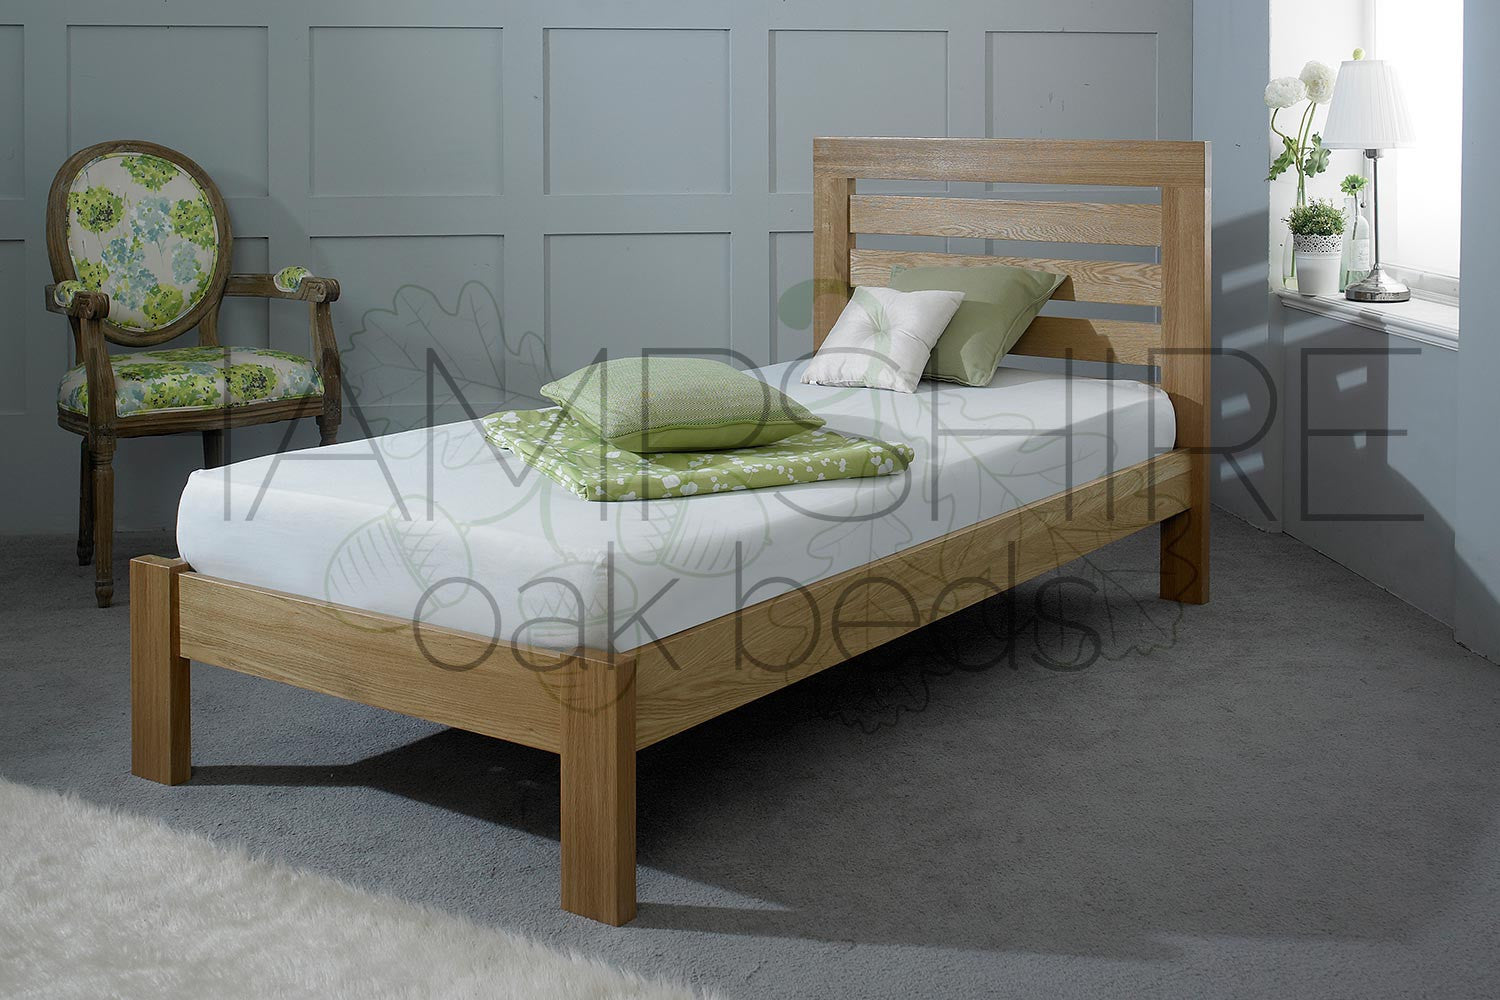 GWO Oak Bed Frame